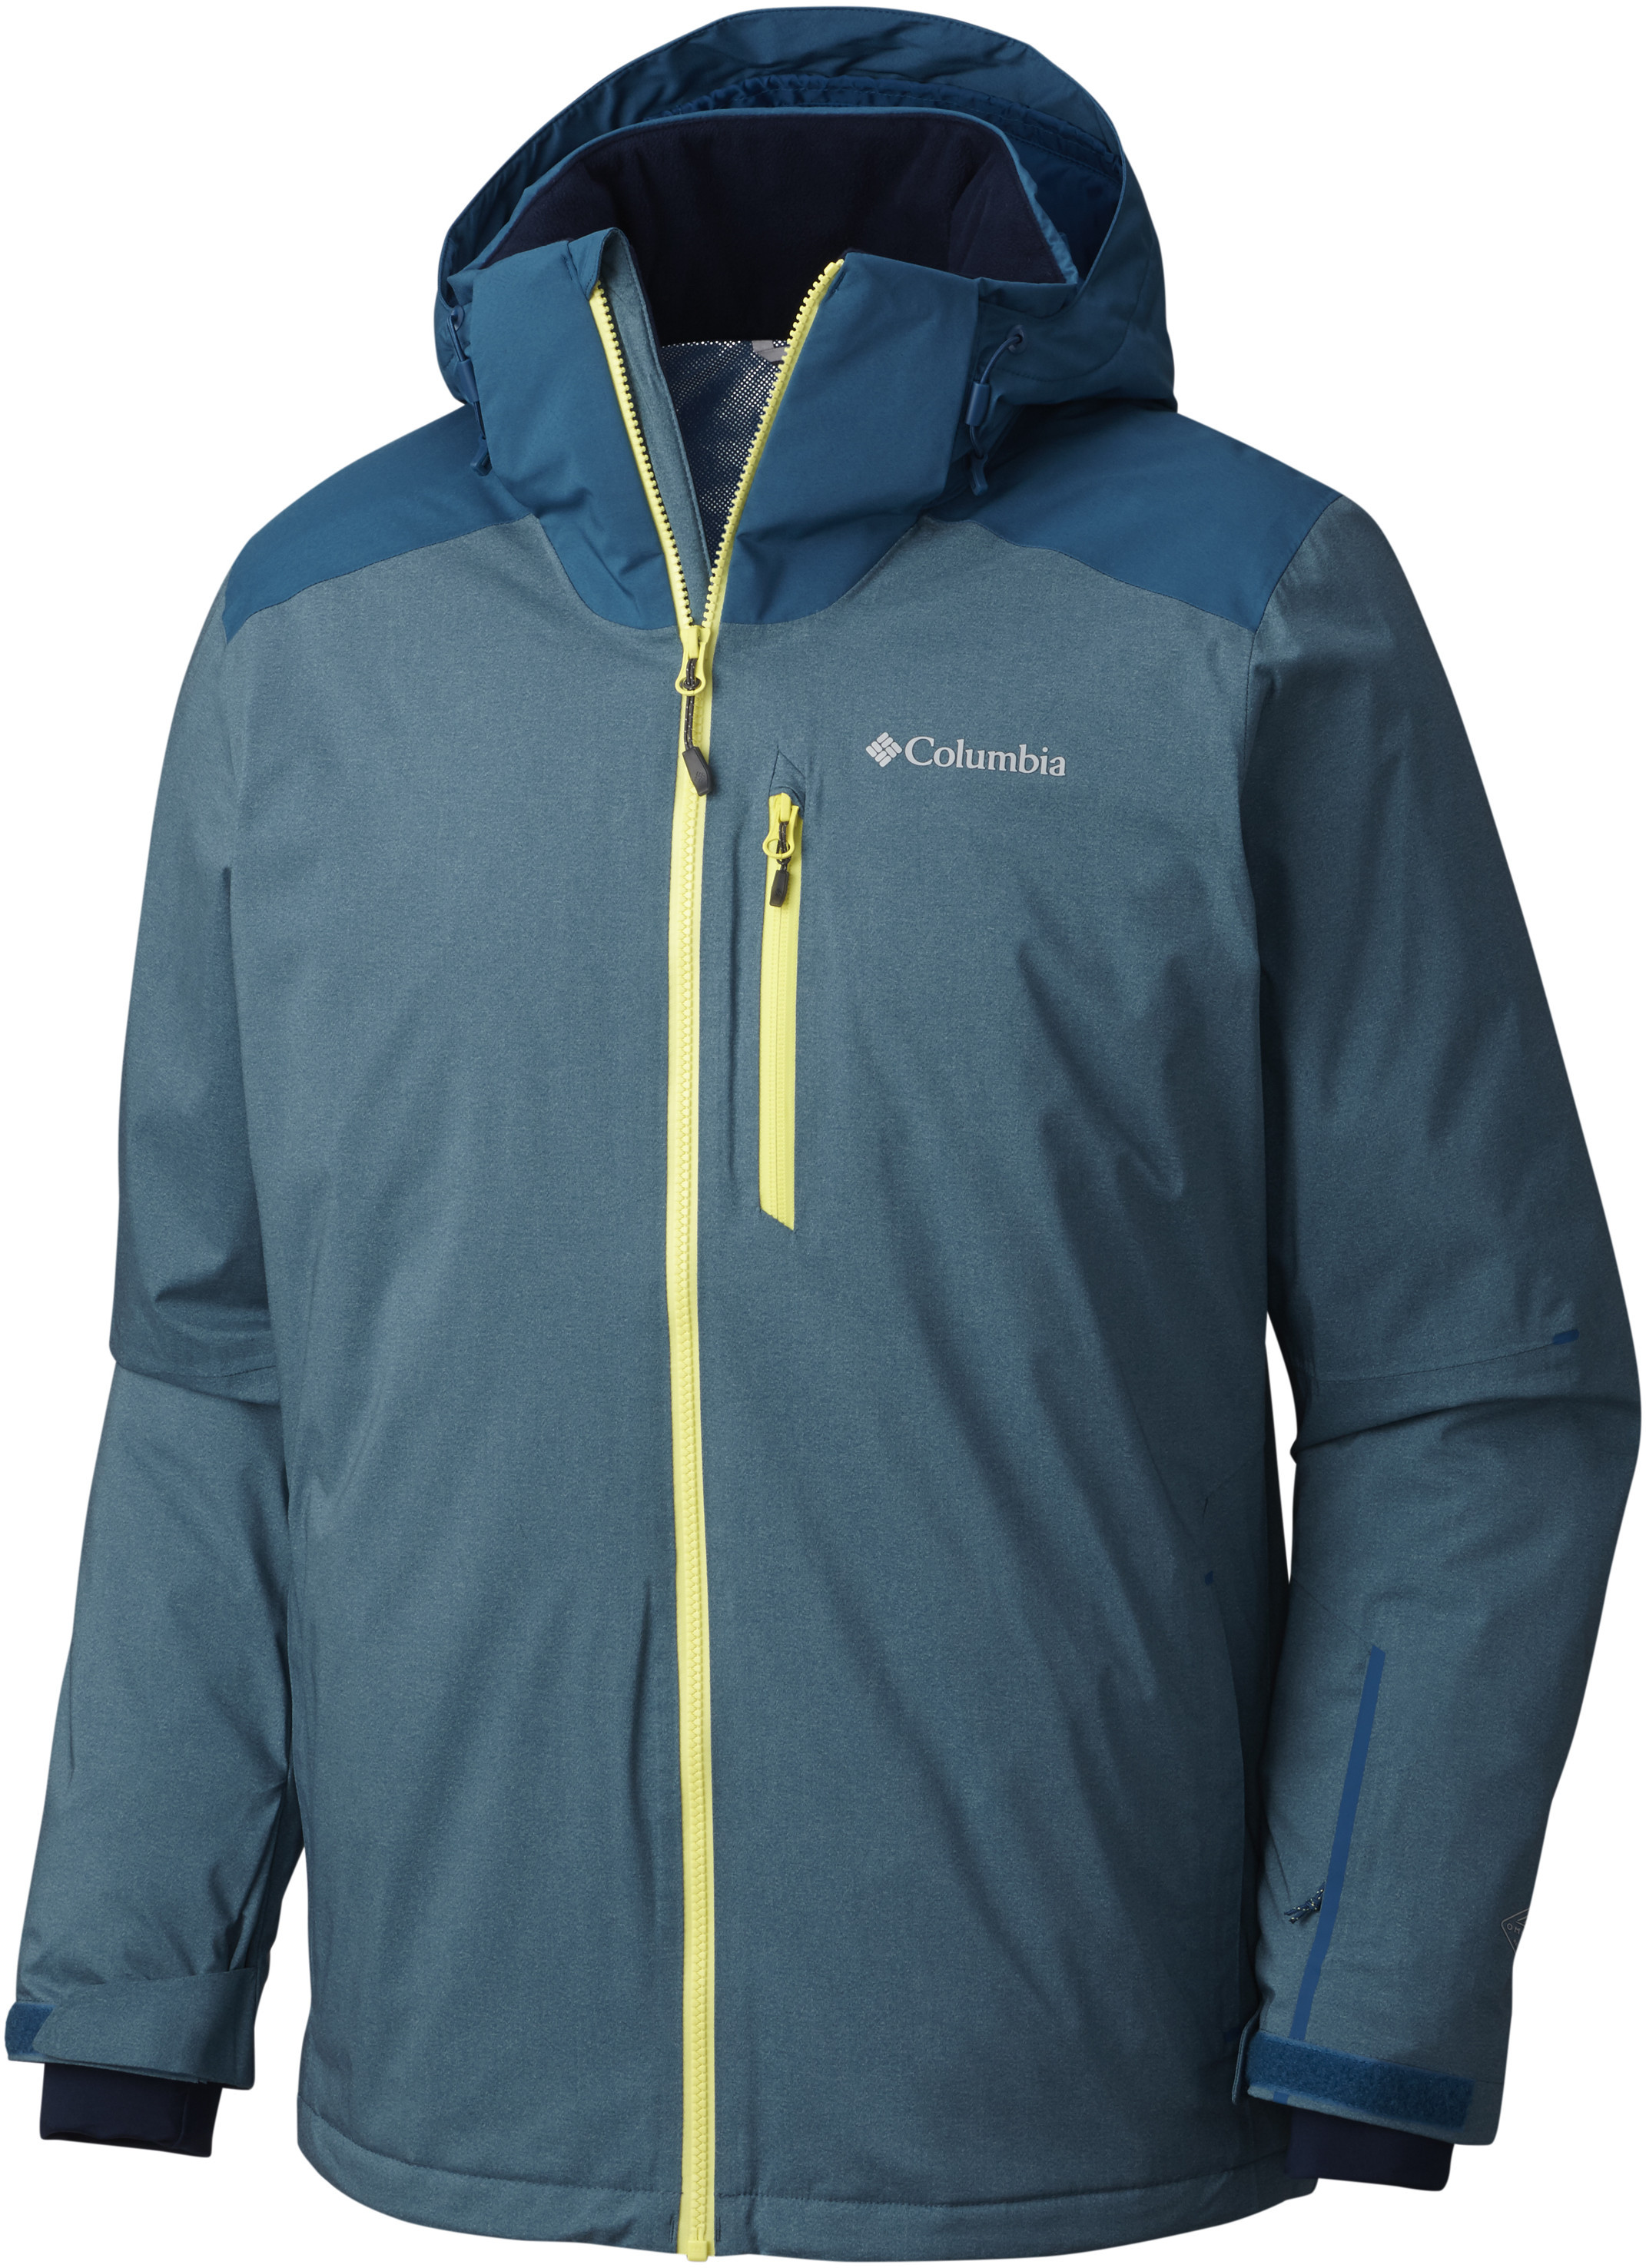 20926e25b Columbia Lost Peak Jacket - Men's, Up to 45% Off with Free S&H — CampSaver